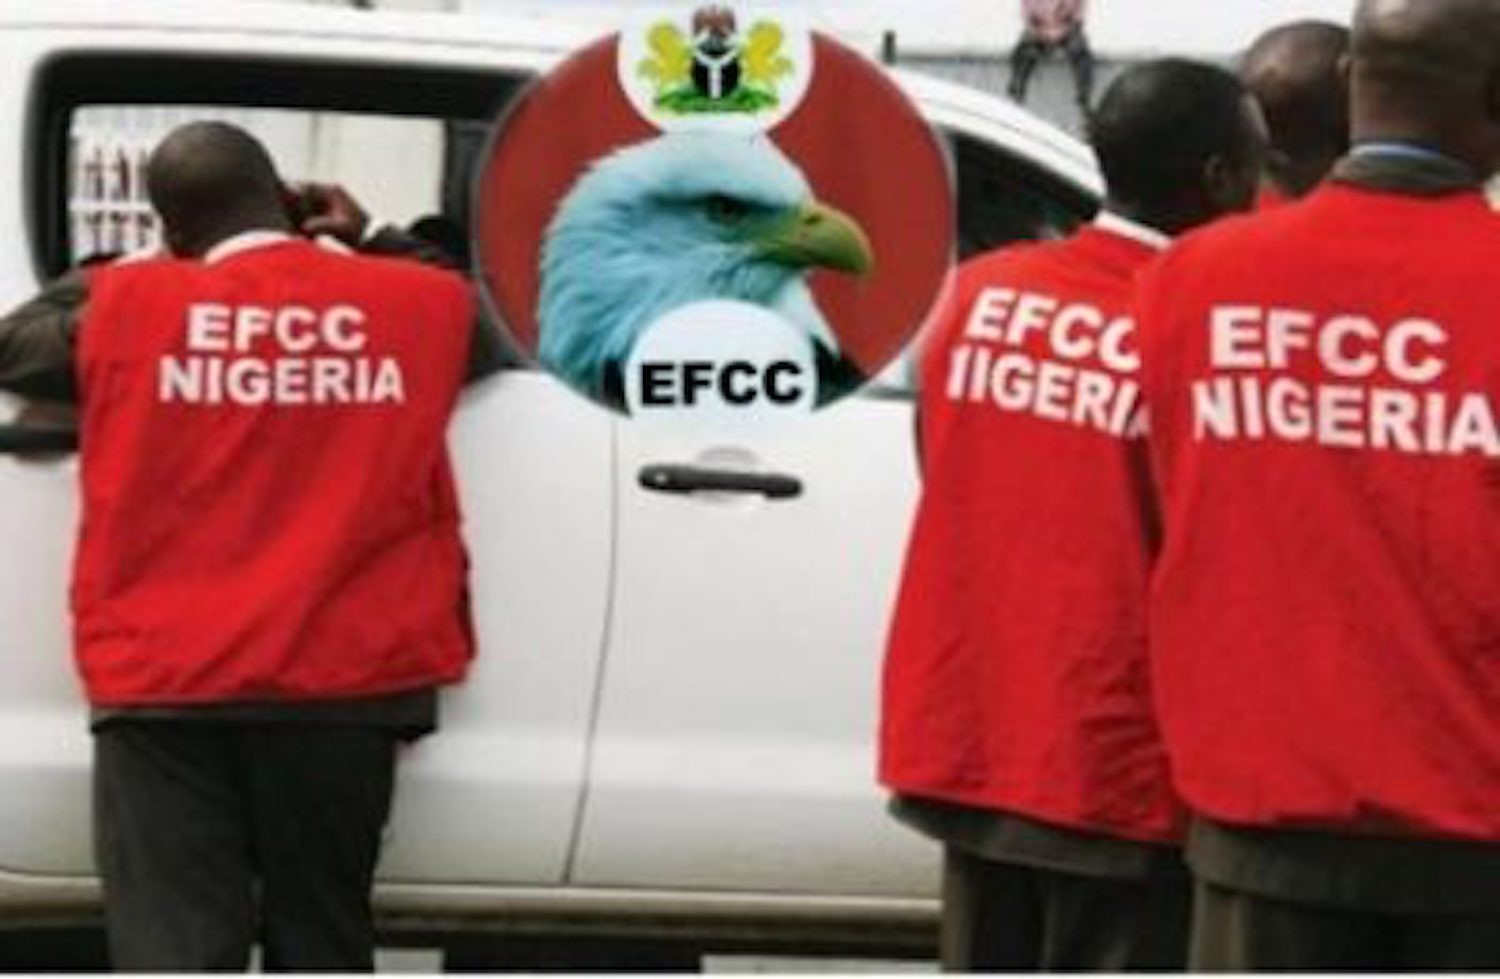 EFCC arraigns firm, MD over $1.29m, N46m transactions